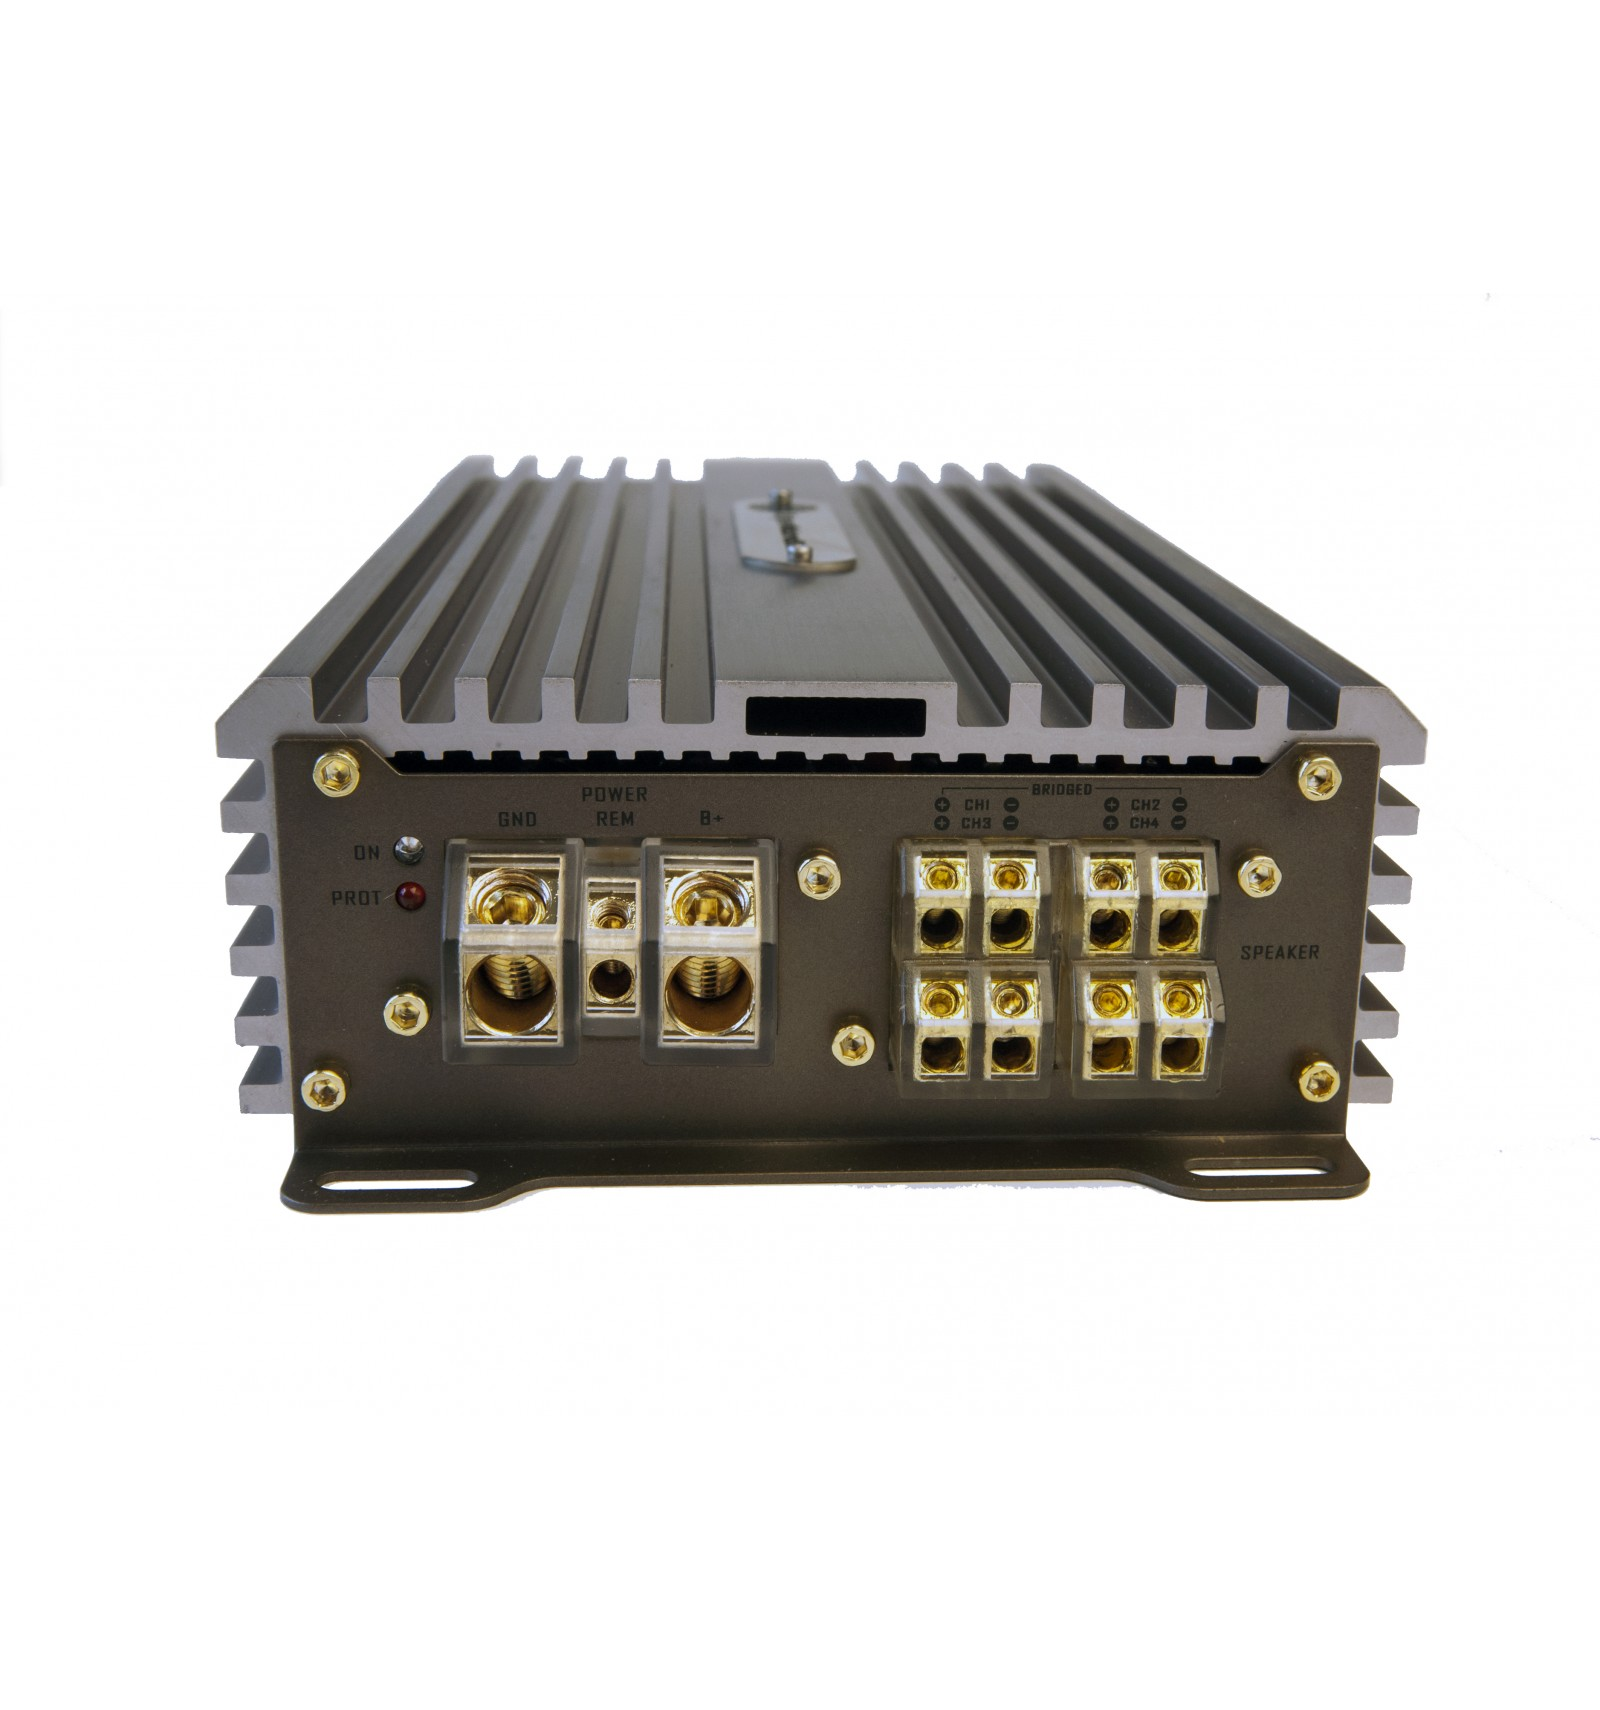 Amplificator Auto Pe 4 Canale Dls Cci44 Gama Reference Mb Quart Pab 2100 2channel Amplifier At Ocsdealscom